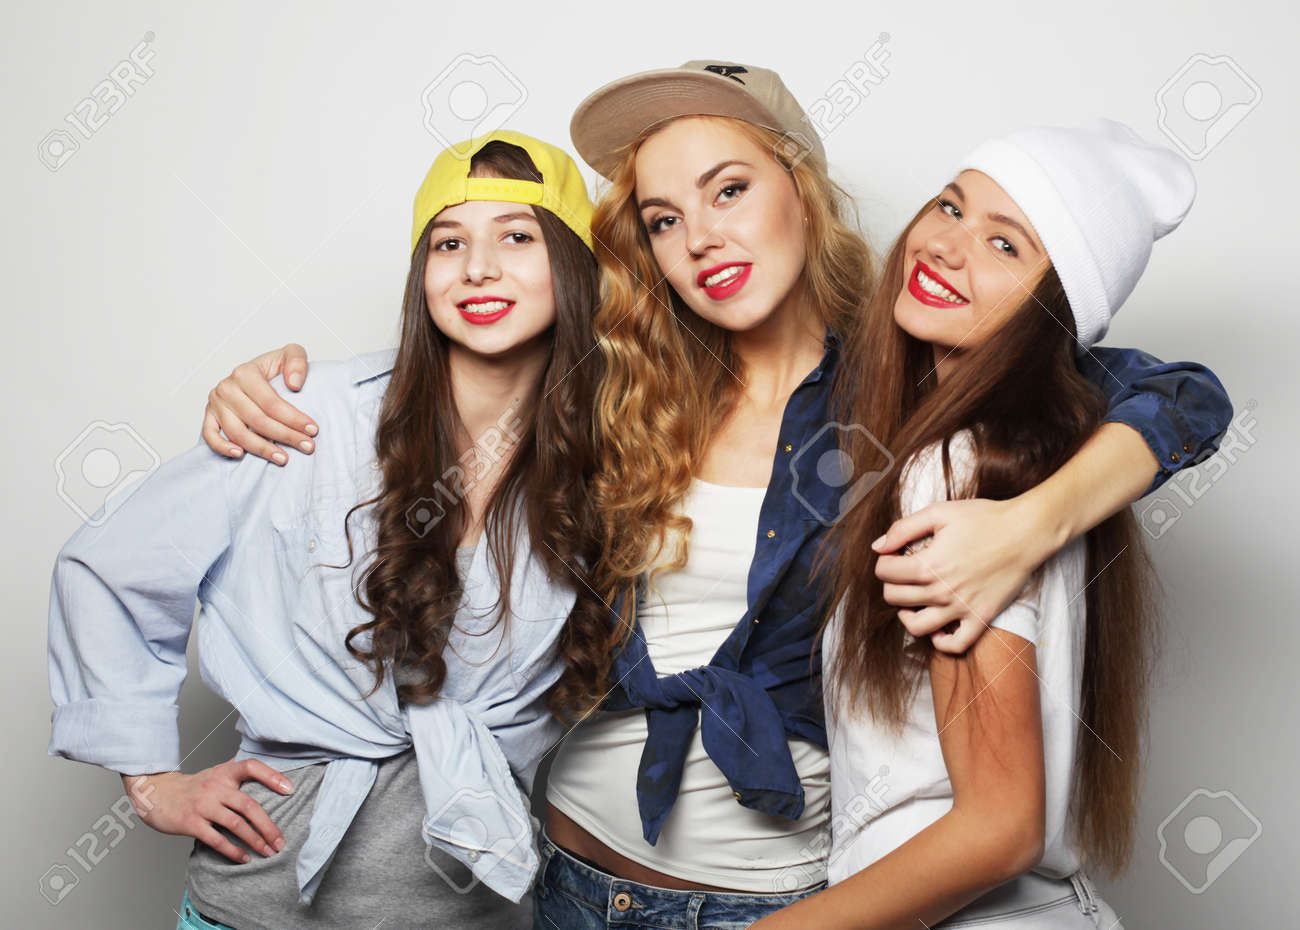 Three young girl friends standing together and having fun. - 170365007